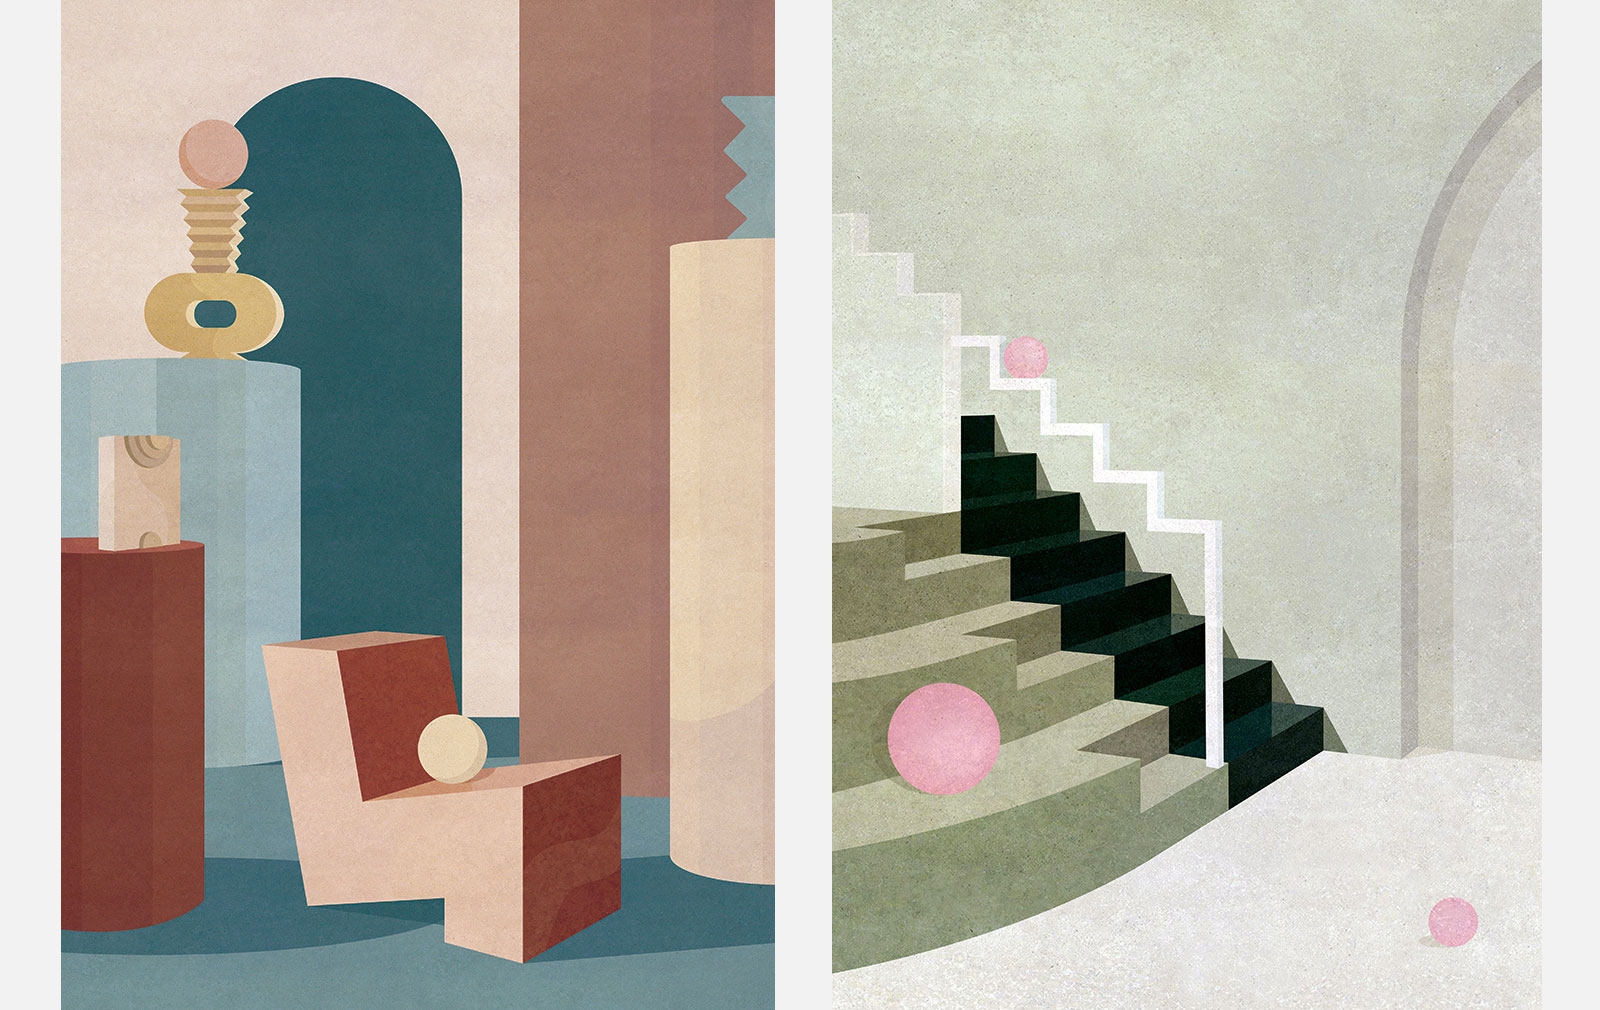 Charlotte Taylor's architectural illustrations